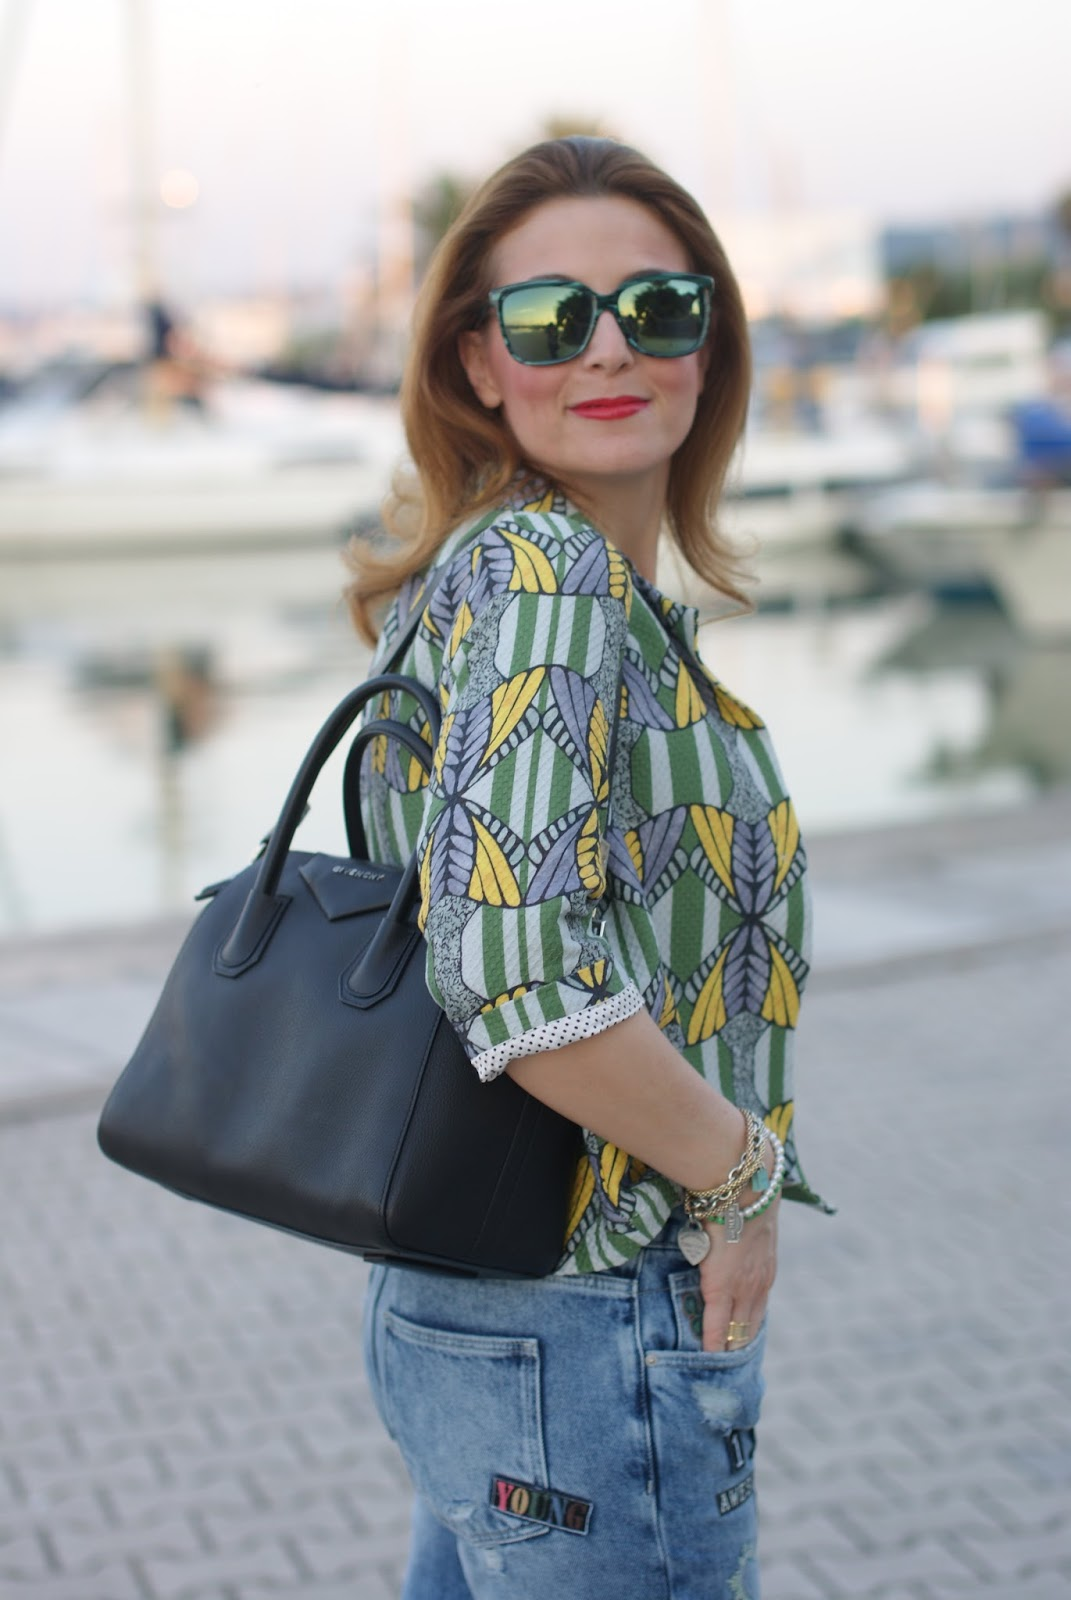 Givenchy Antigona bag, yellow Zara necklace, Hype glasses on Fashion and Cookies fashion blog